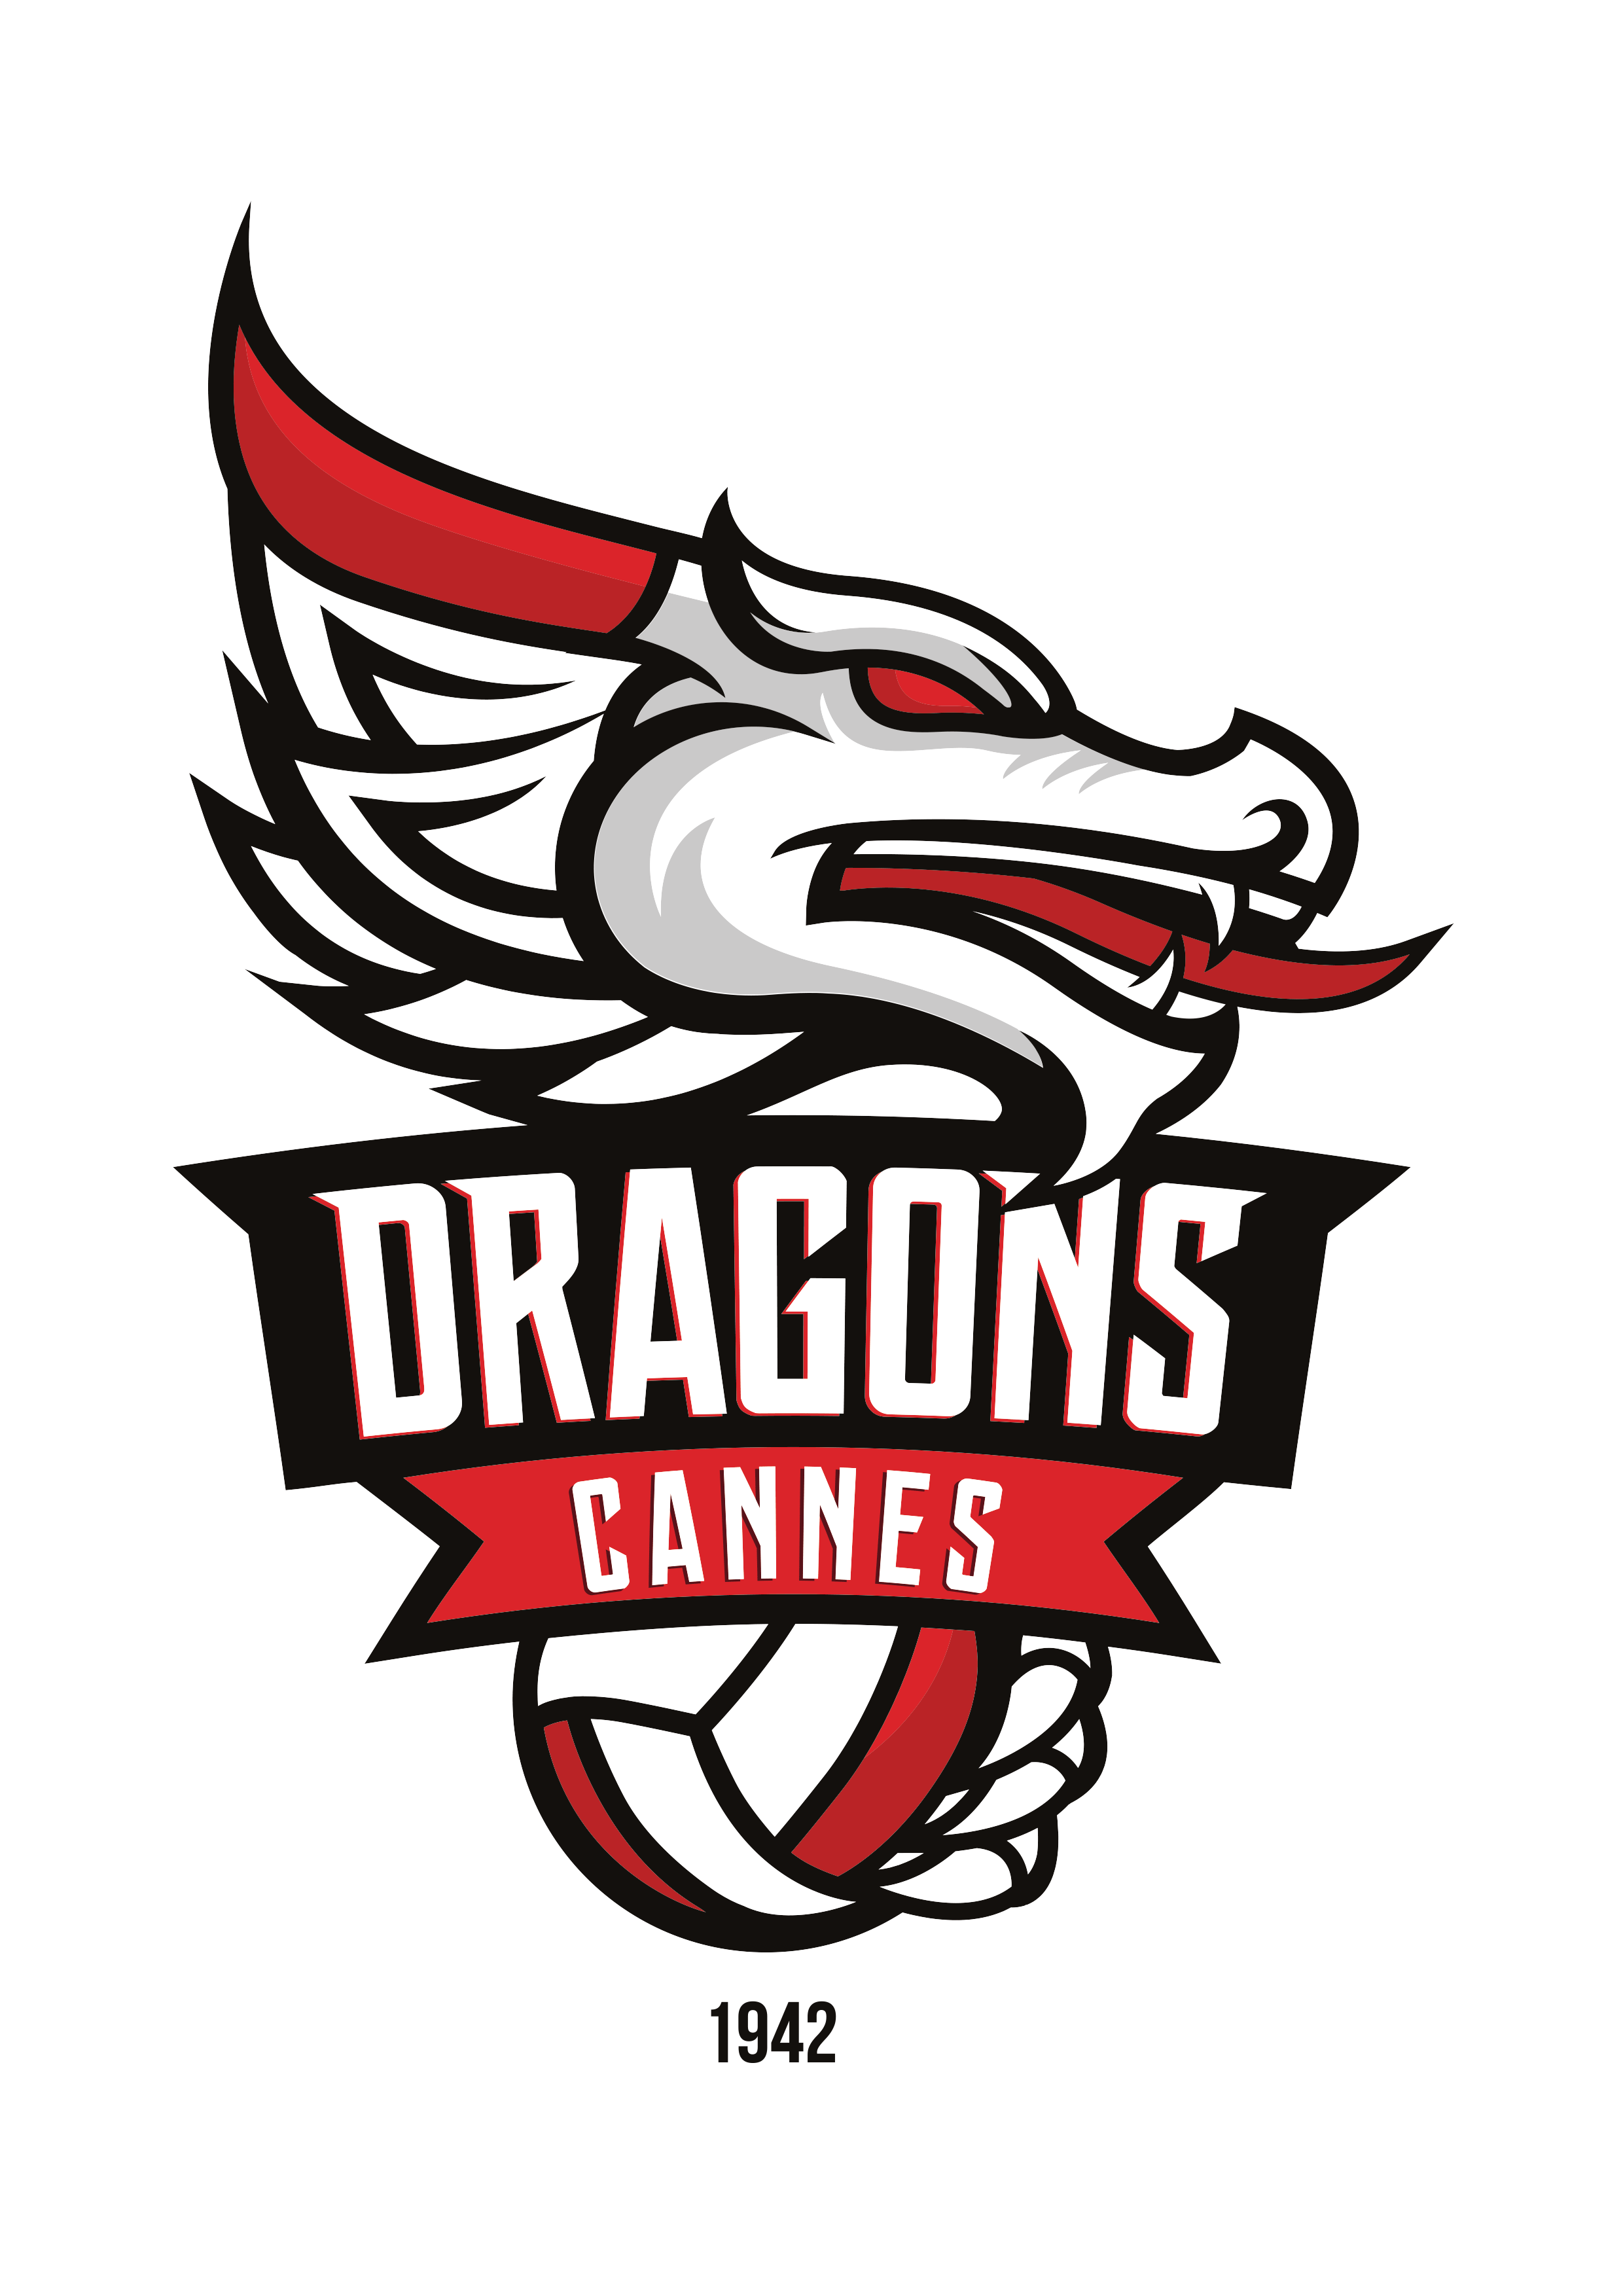 Dragons Cannes